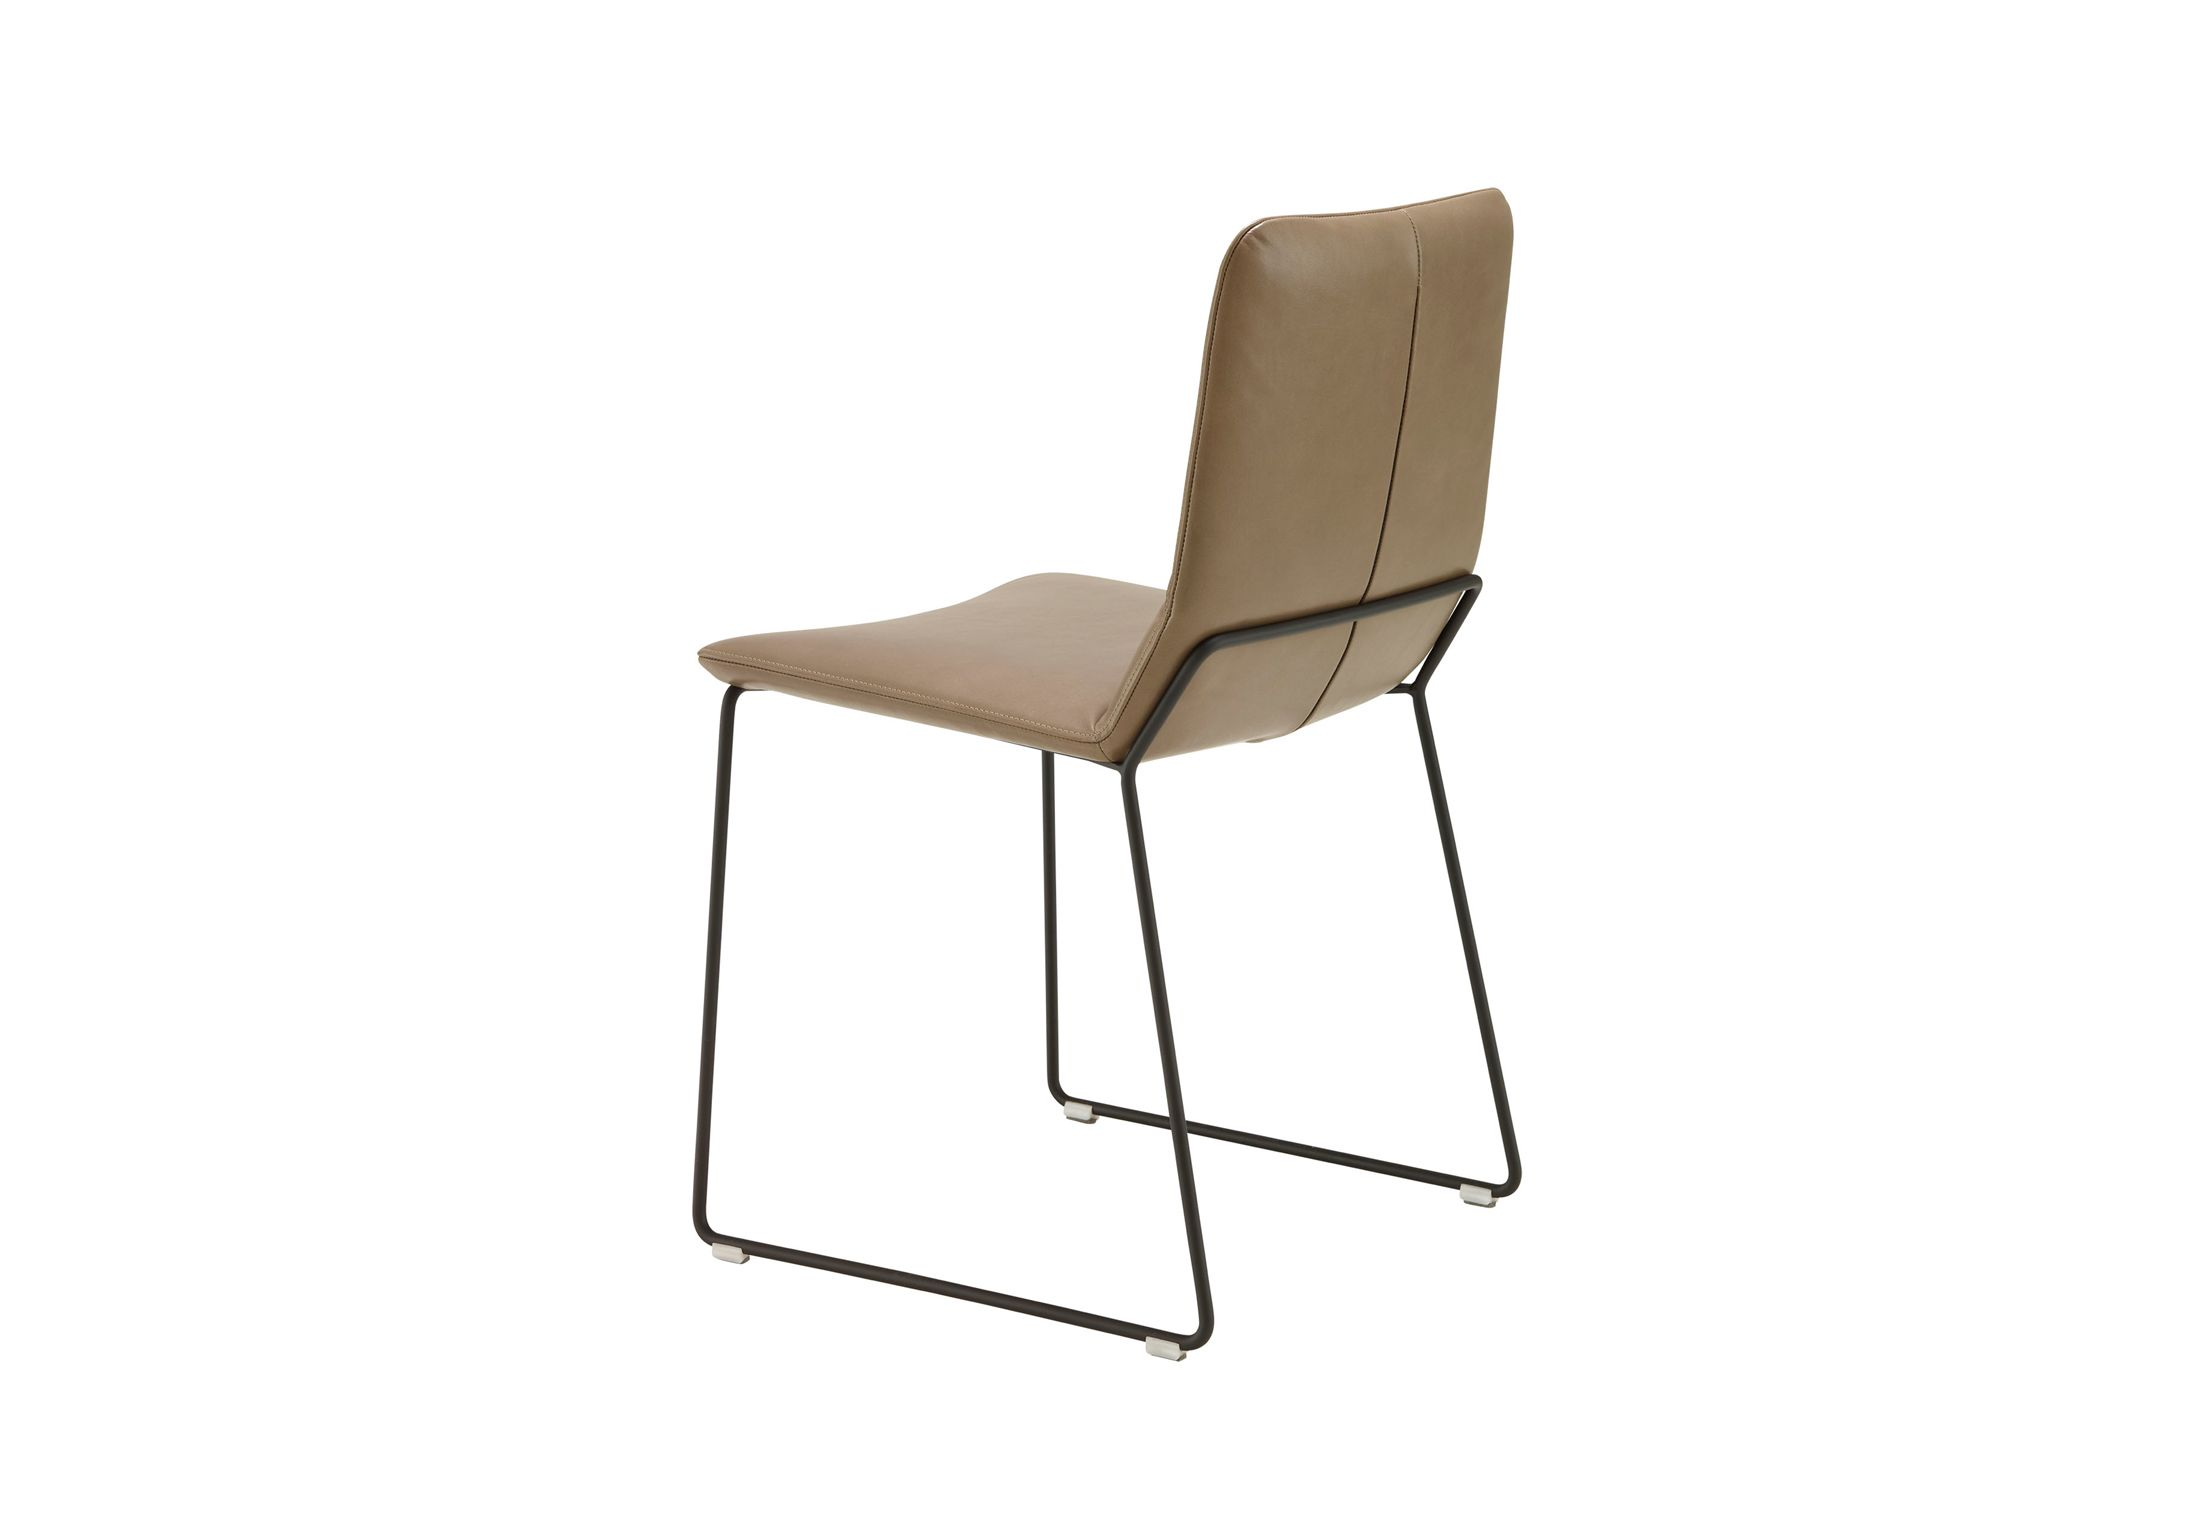 Phenomenal Image Result For Bend Chair Ligne Roset In 2019 Bend Chair Forskolin Free Trial Chair Design Images Forskolin Free Trialorg